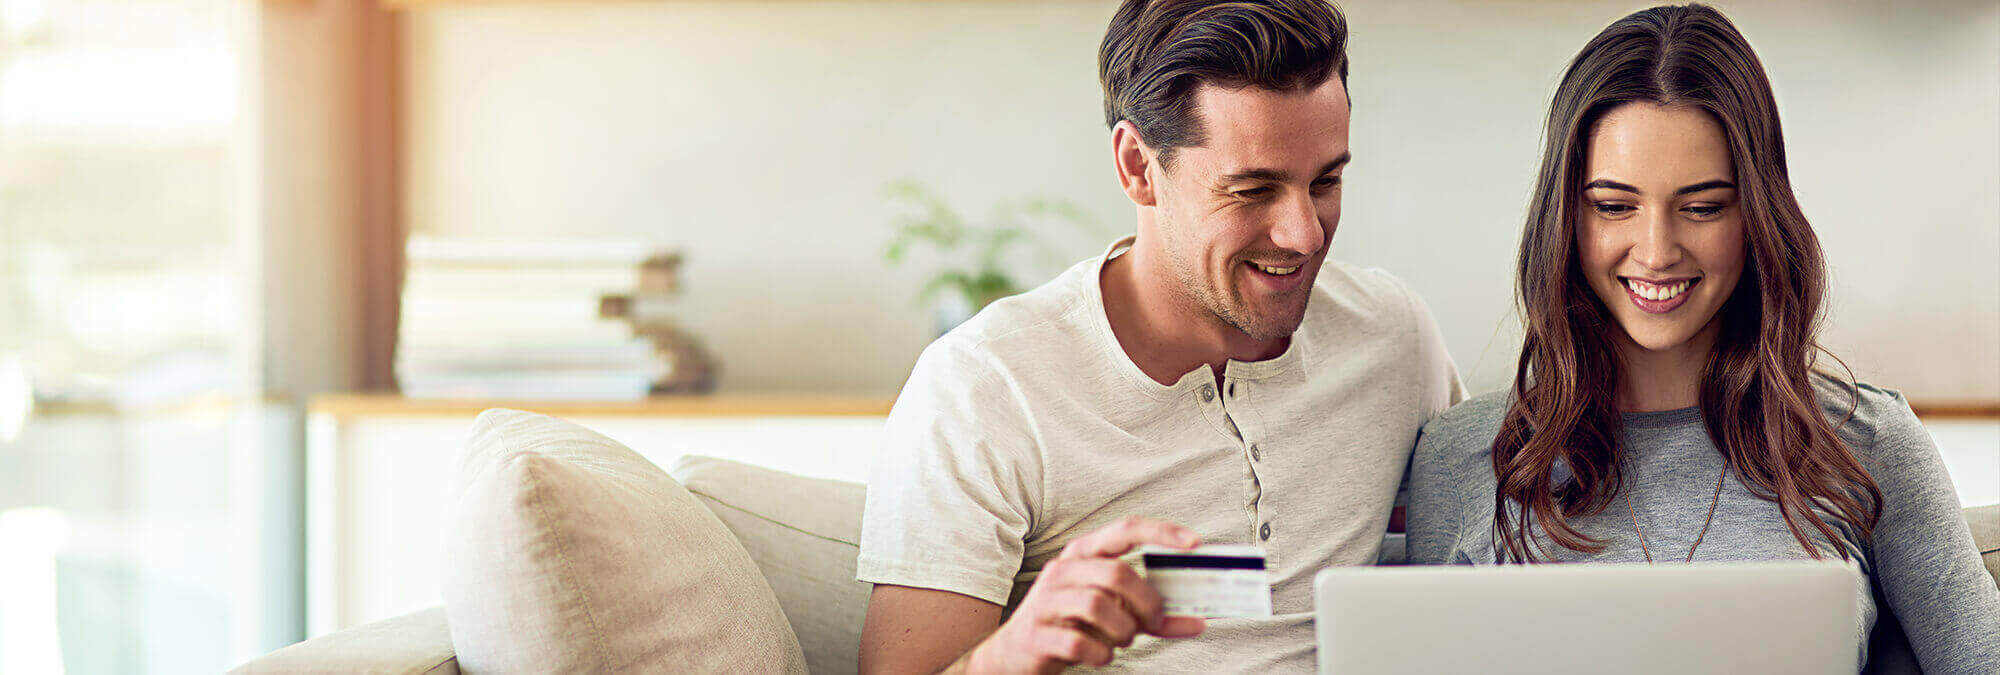 couple paying a bill online together